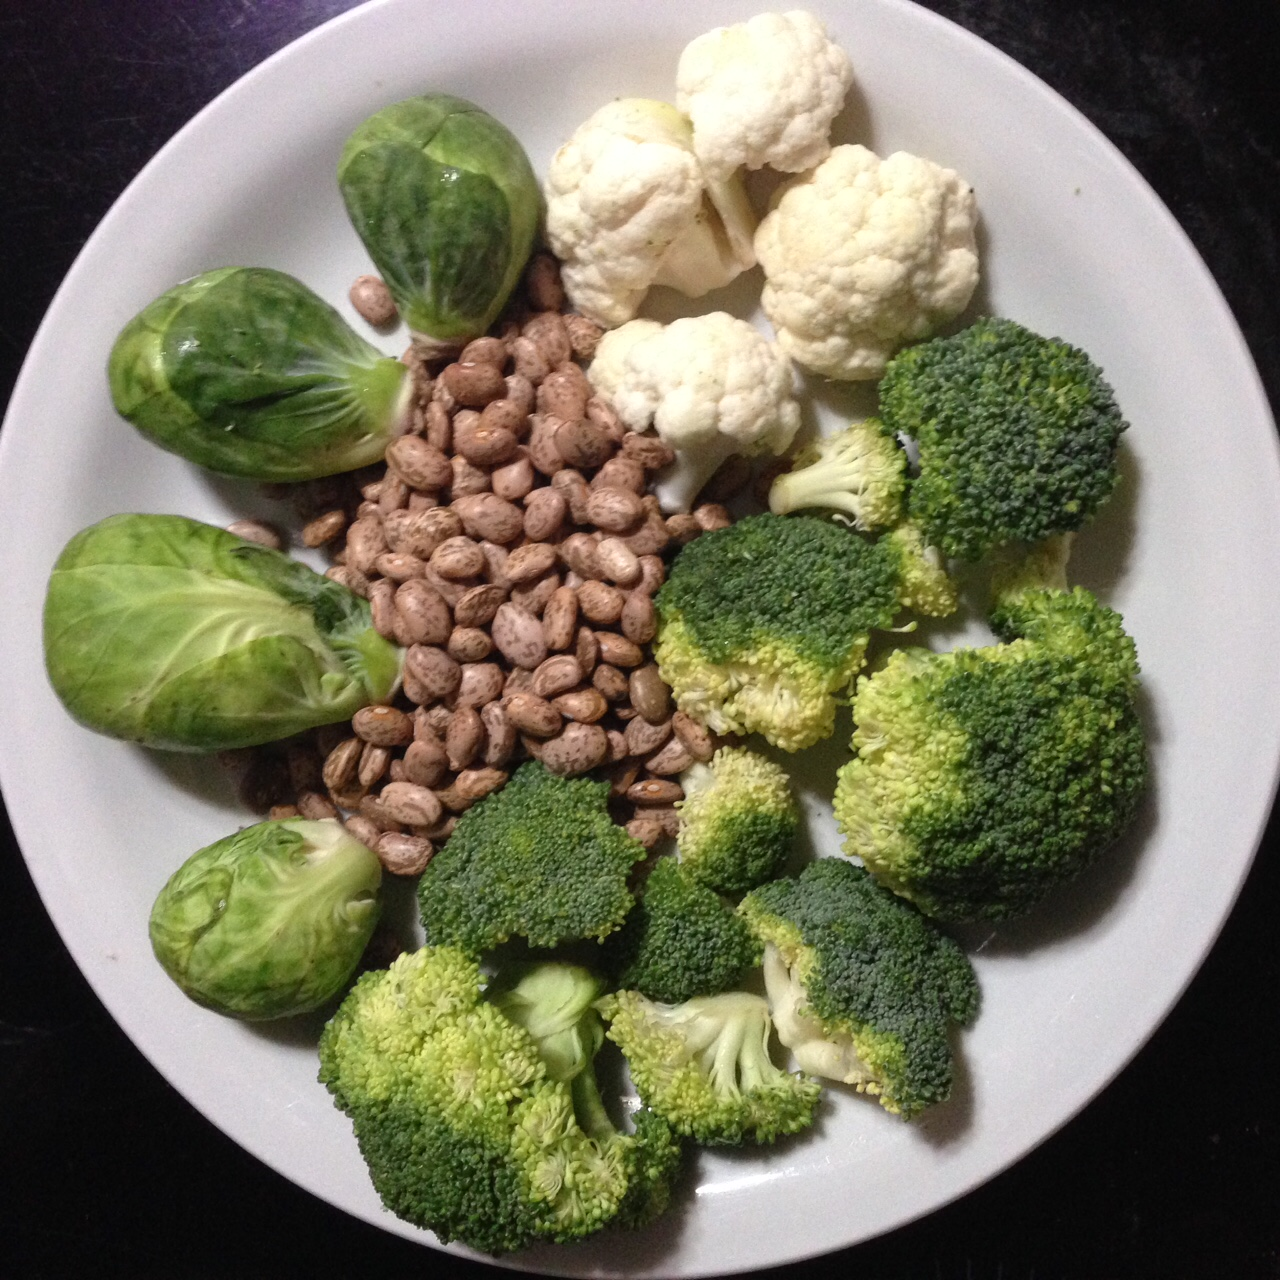 Broccoli, cauliflower, Brussel sprouts and dried cooked beans are among the foods most associated with causing excessive intestinal gas. Photo by Carol Bareuther